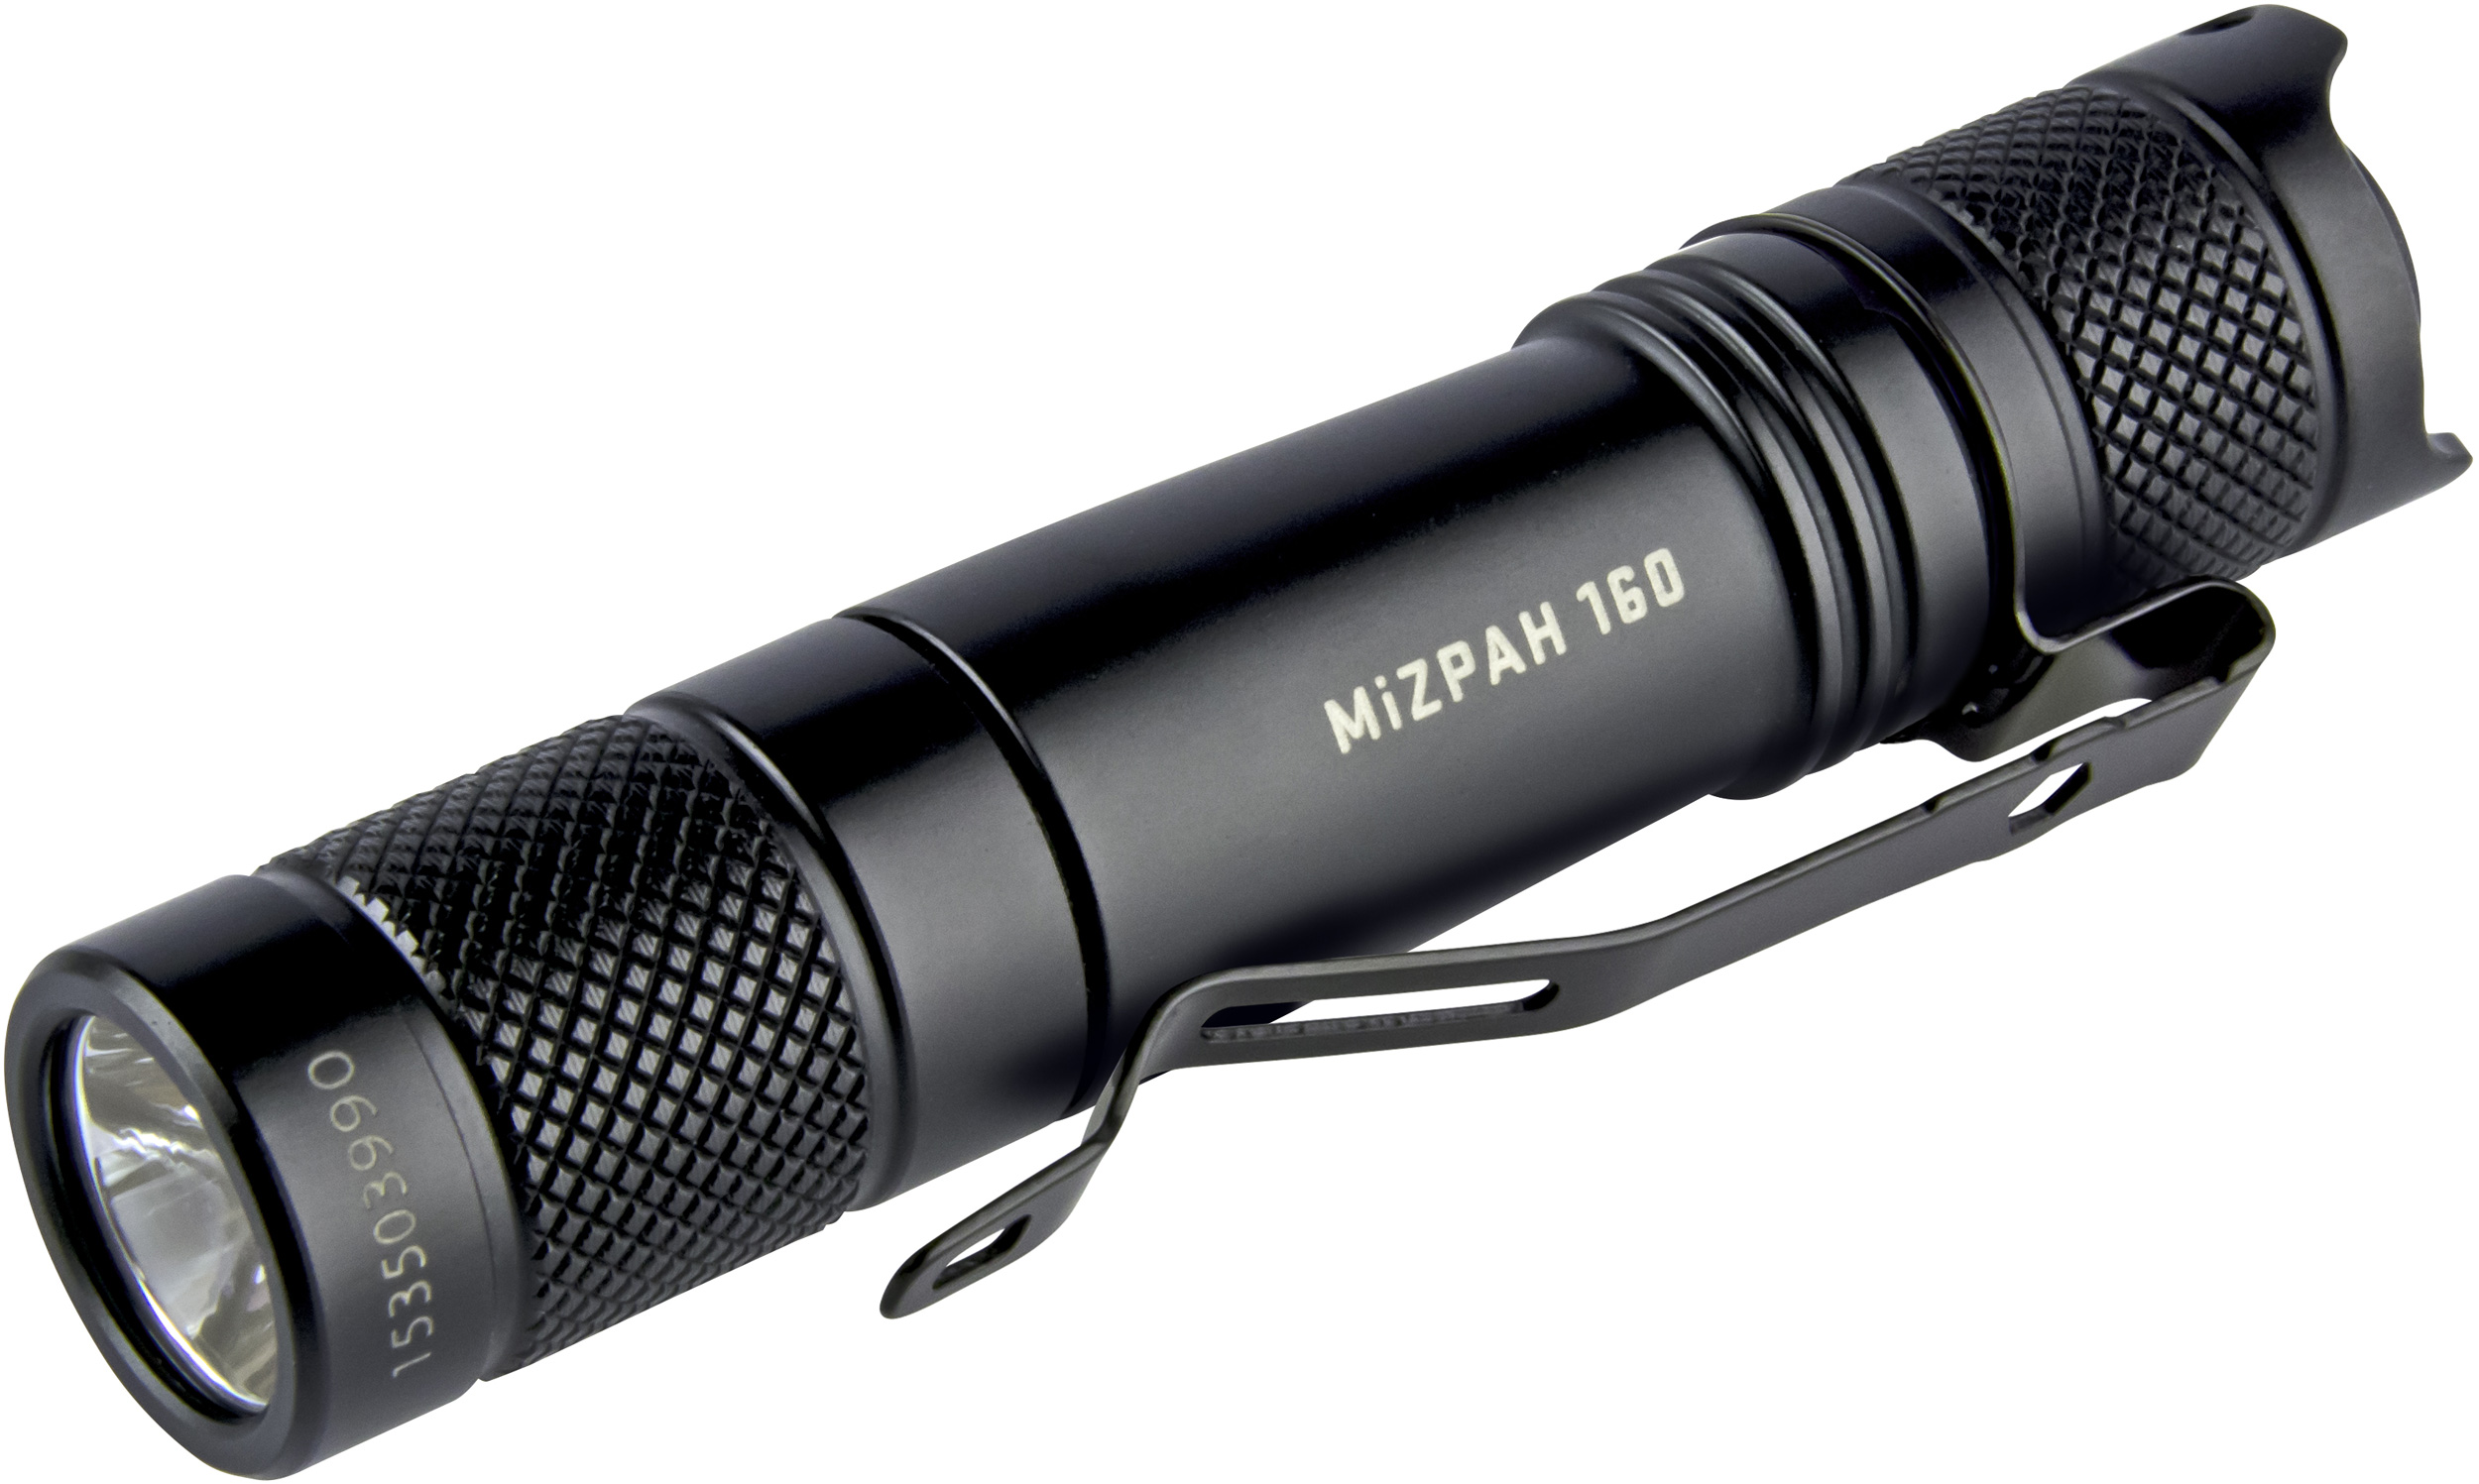 Factor Equipment FM002 MiZPAH 160 Compact LED Flashlight, Black, 160 Max Lumens